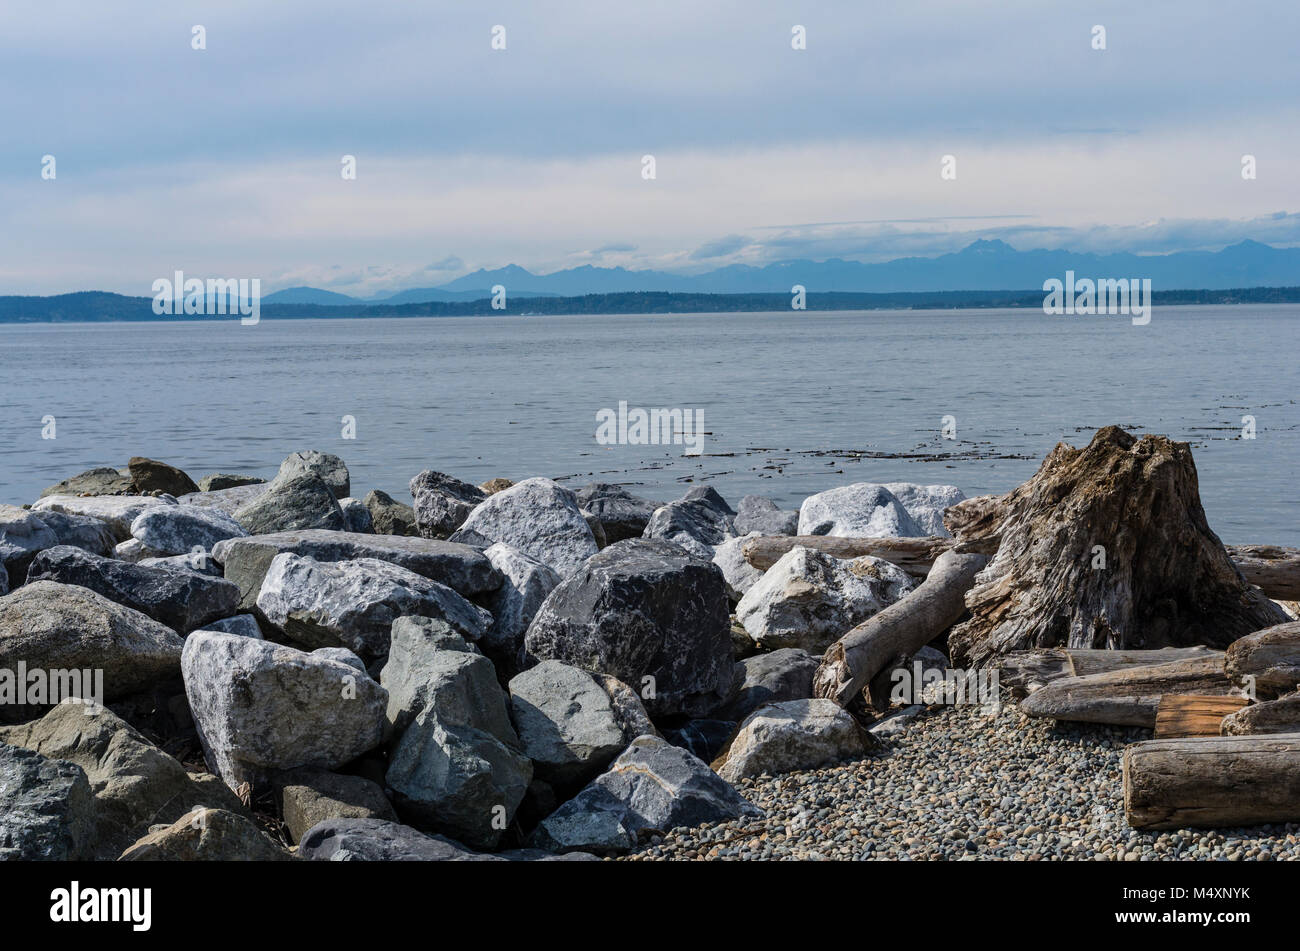 Rock rip rap along the Seattle waterfront with the Olympic Mountains in the background.  Seattle, Washington - Stock Image